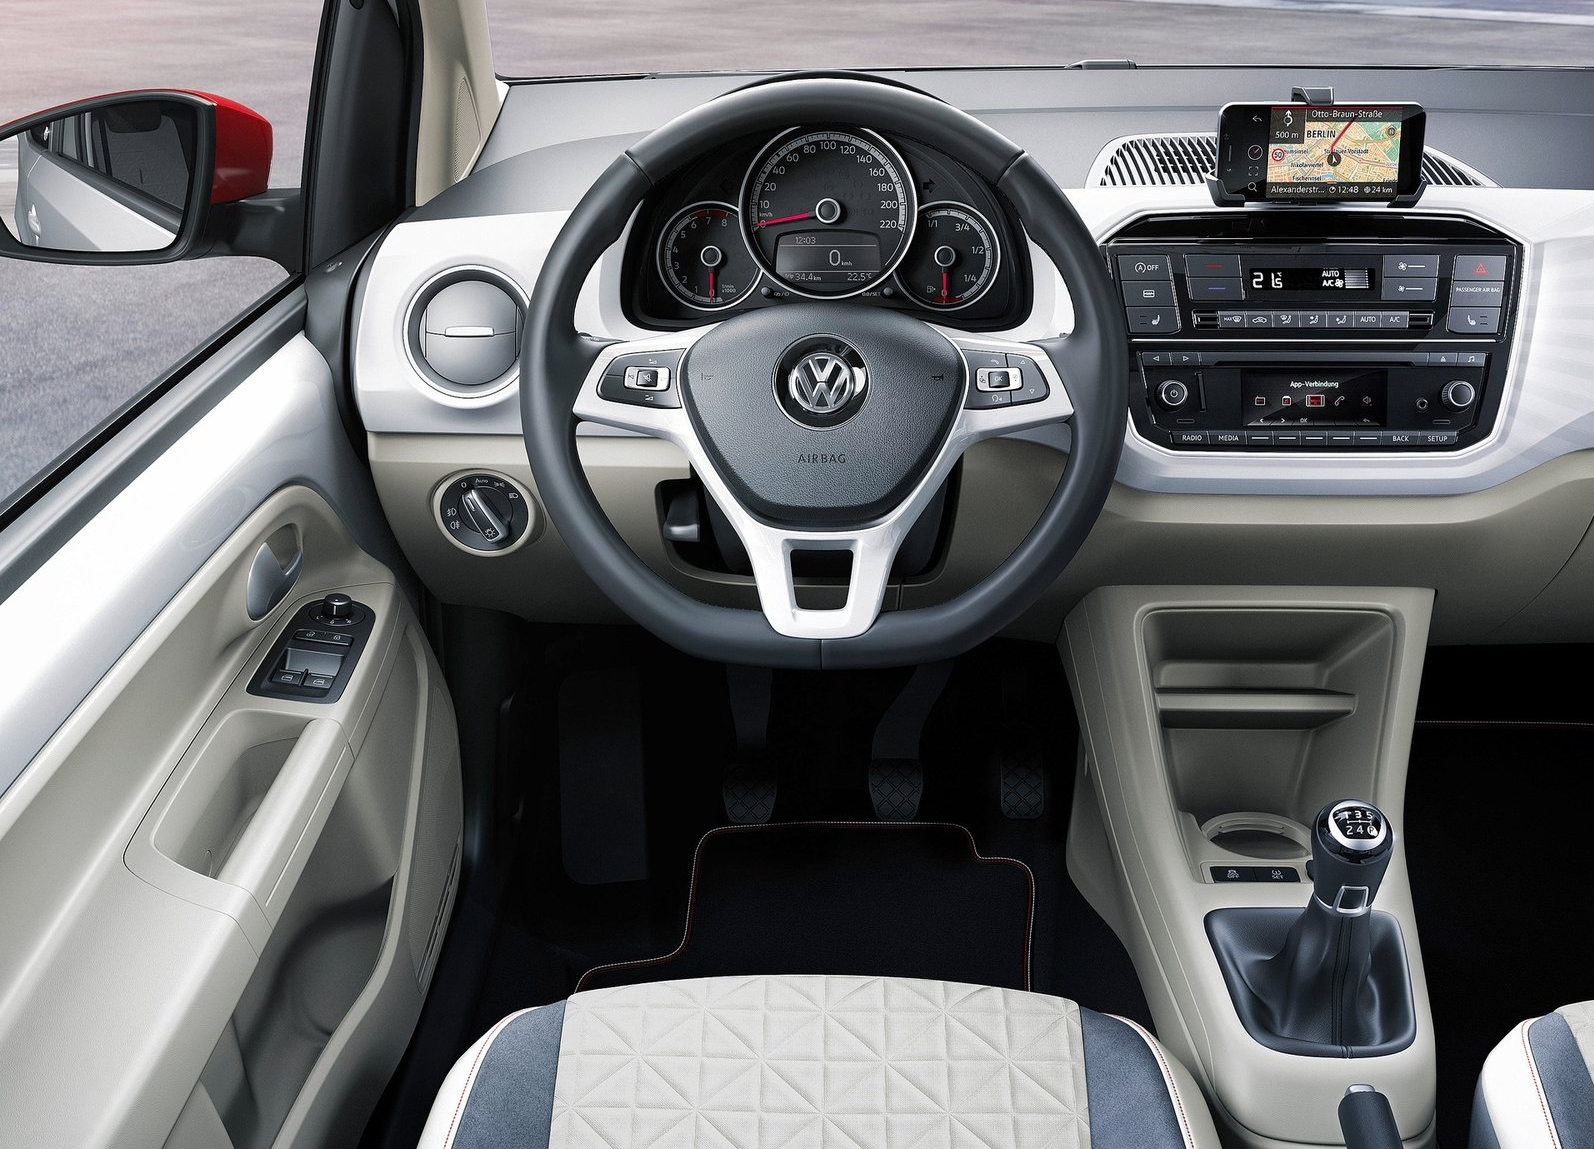 https://www.whatcar.lv/cars/Volkswagen/Up hečbeks/699aed1a587083fd3bb5d597499faa40.jpg